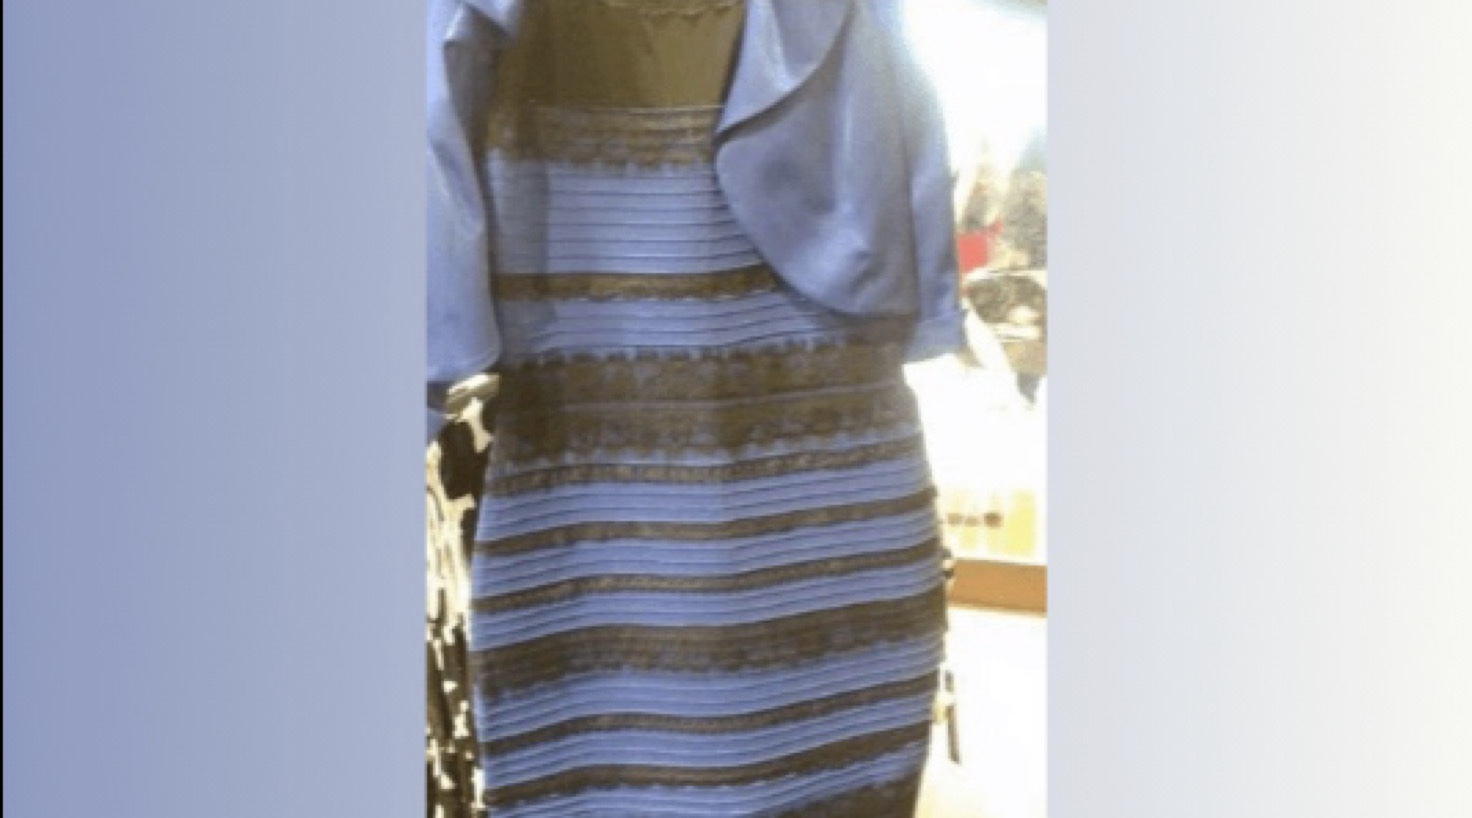 What color is the infamous dress? -